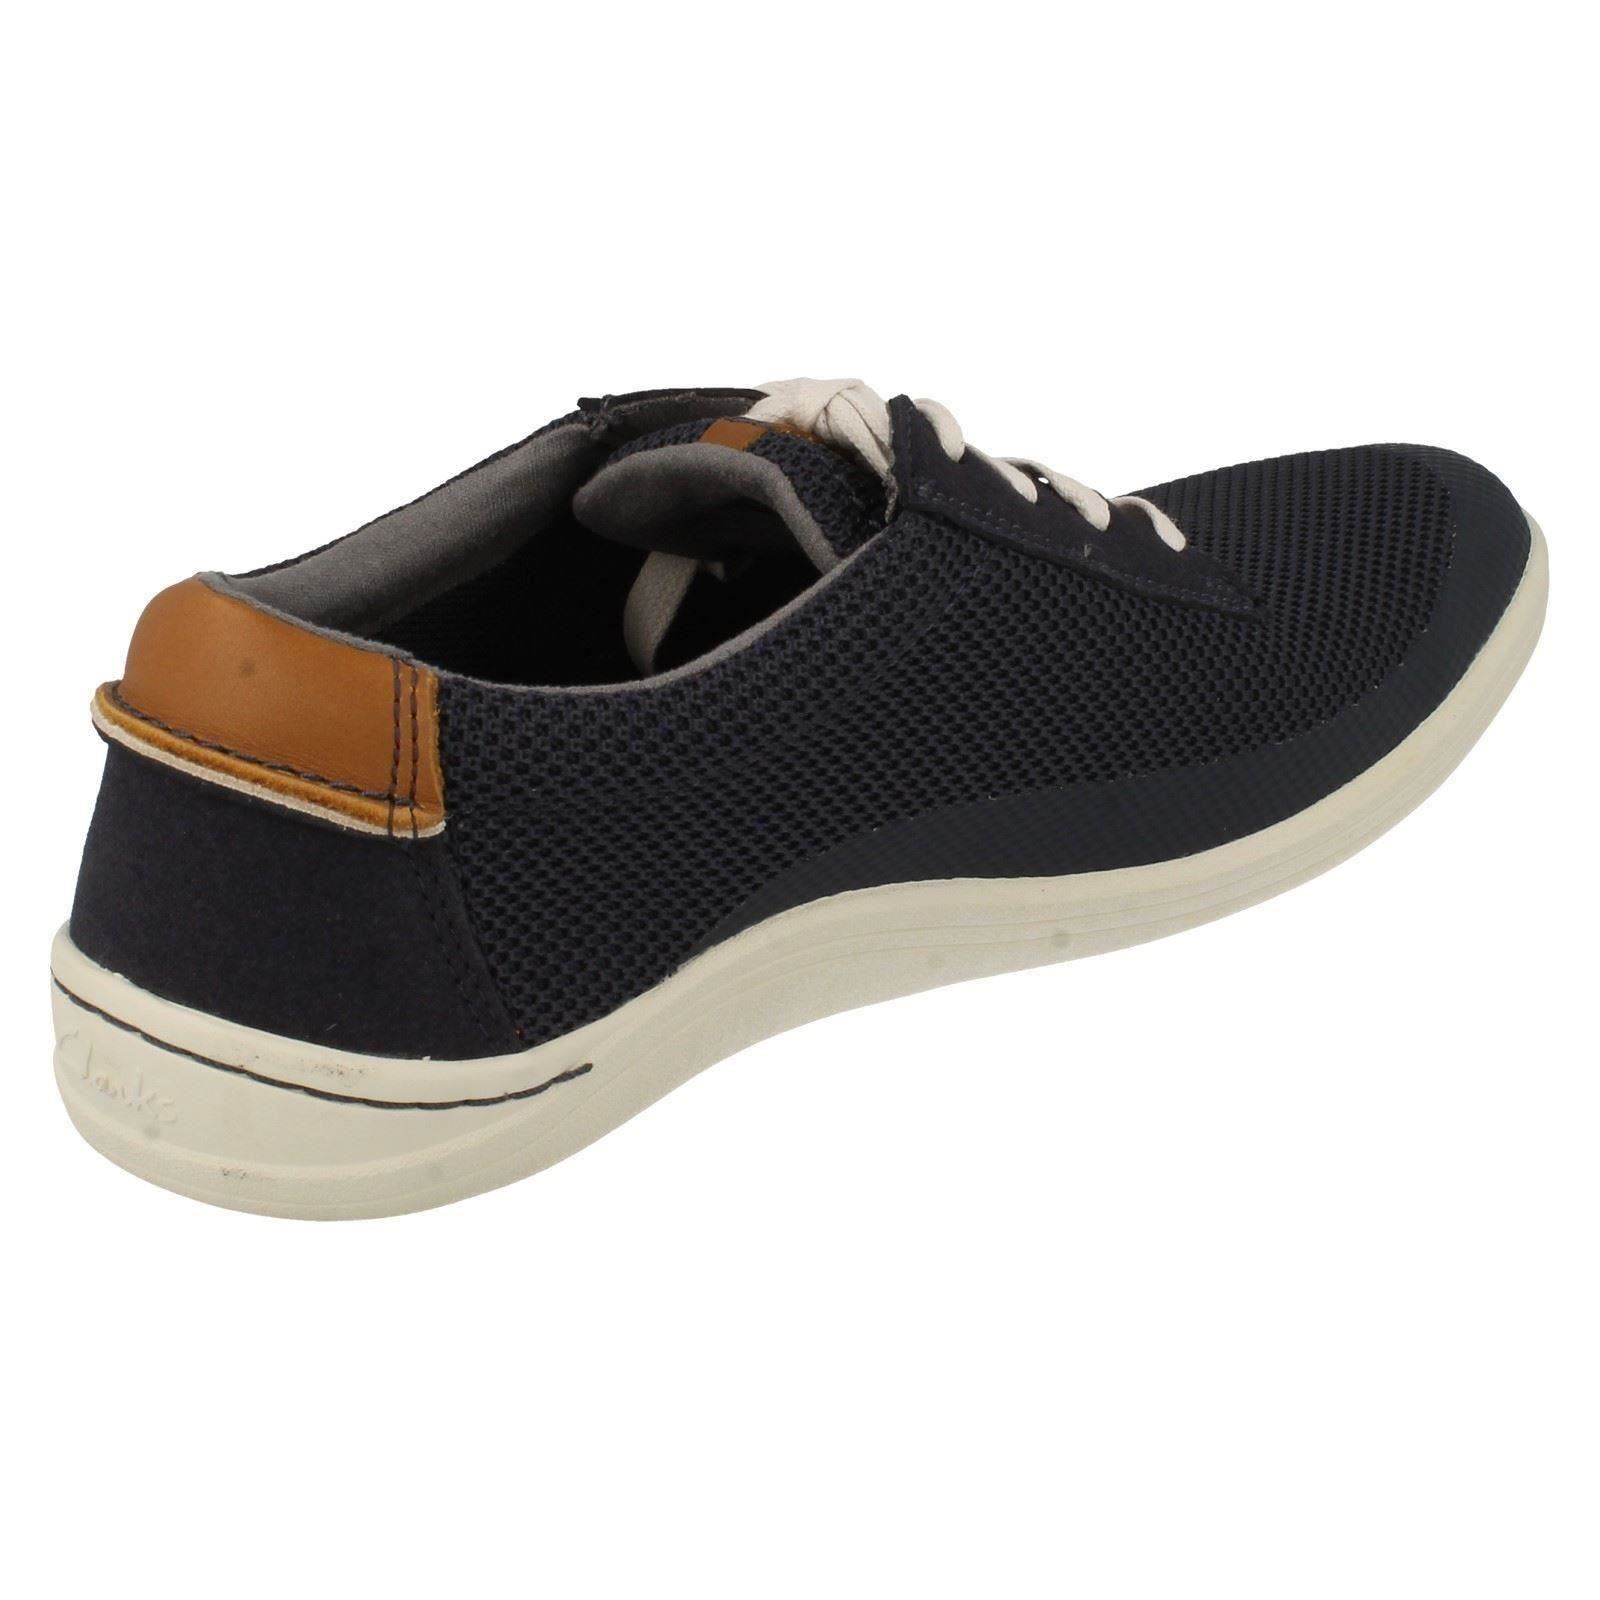 Uomo Edge' Clarks Casual Schuhes 'Mapped Edge' Uomo 752fb3